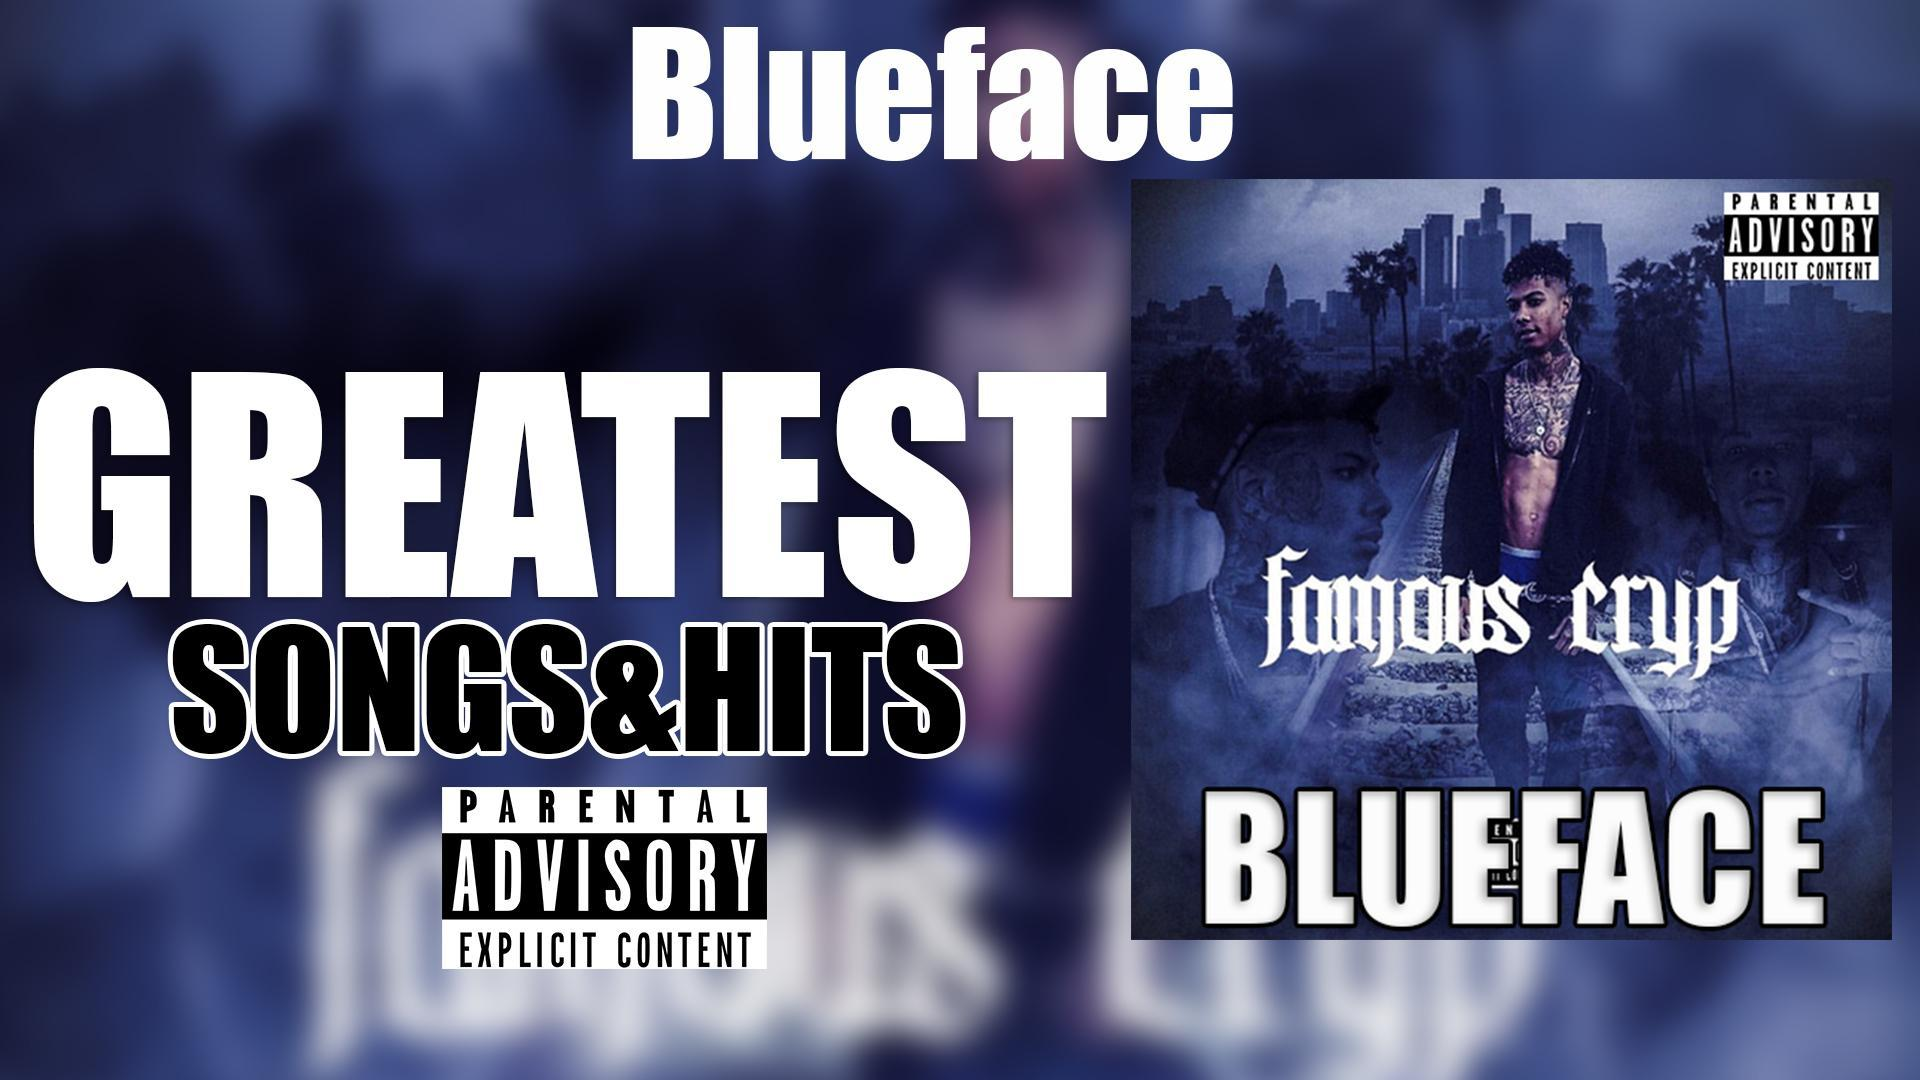 BlueFace Songs for Android - APK Download